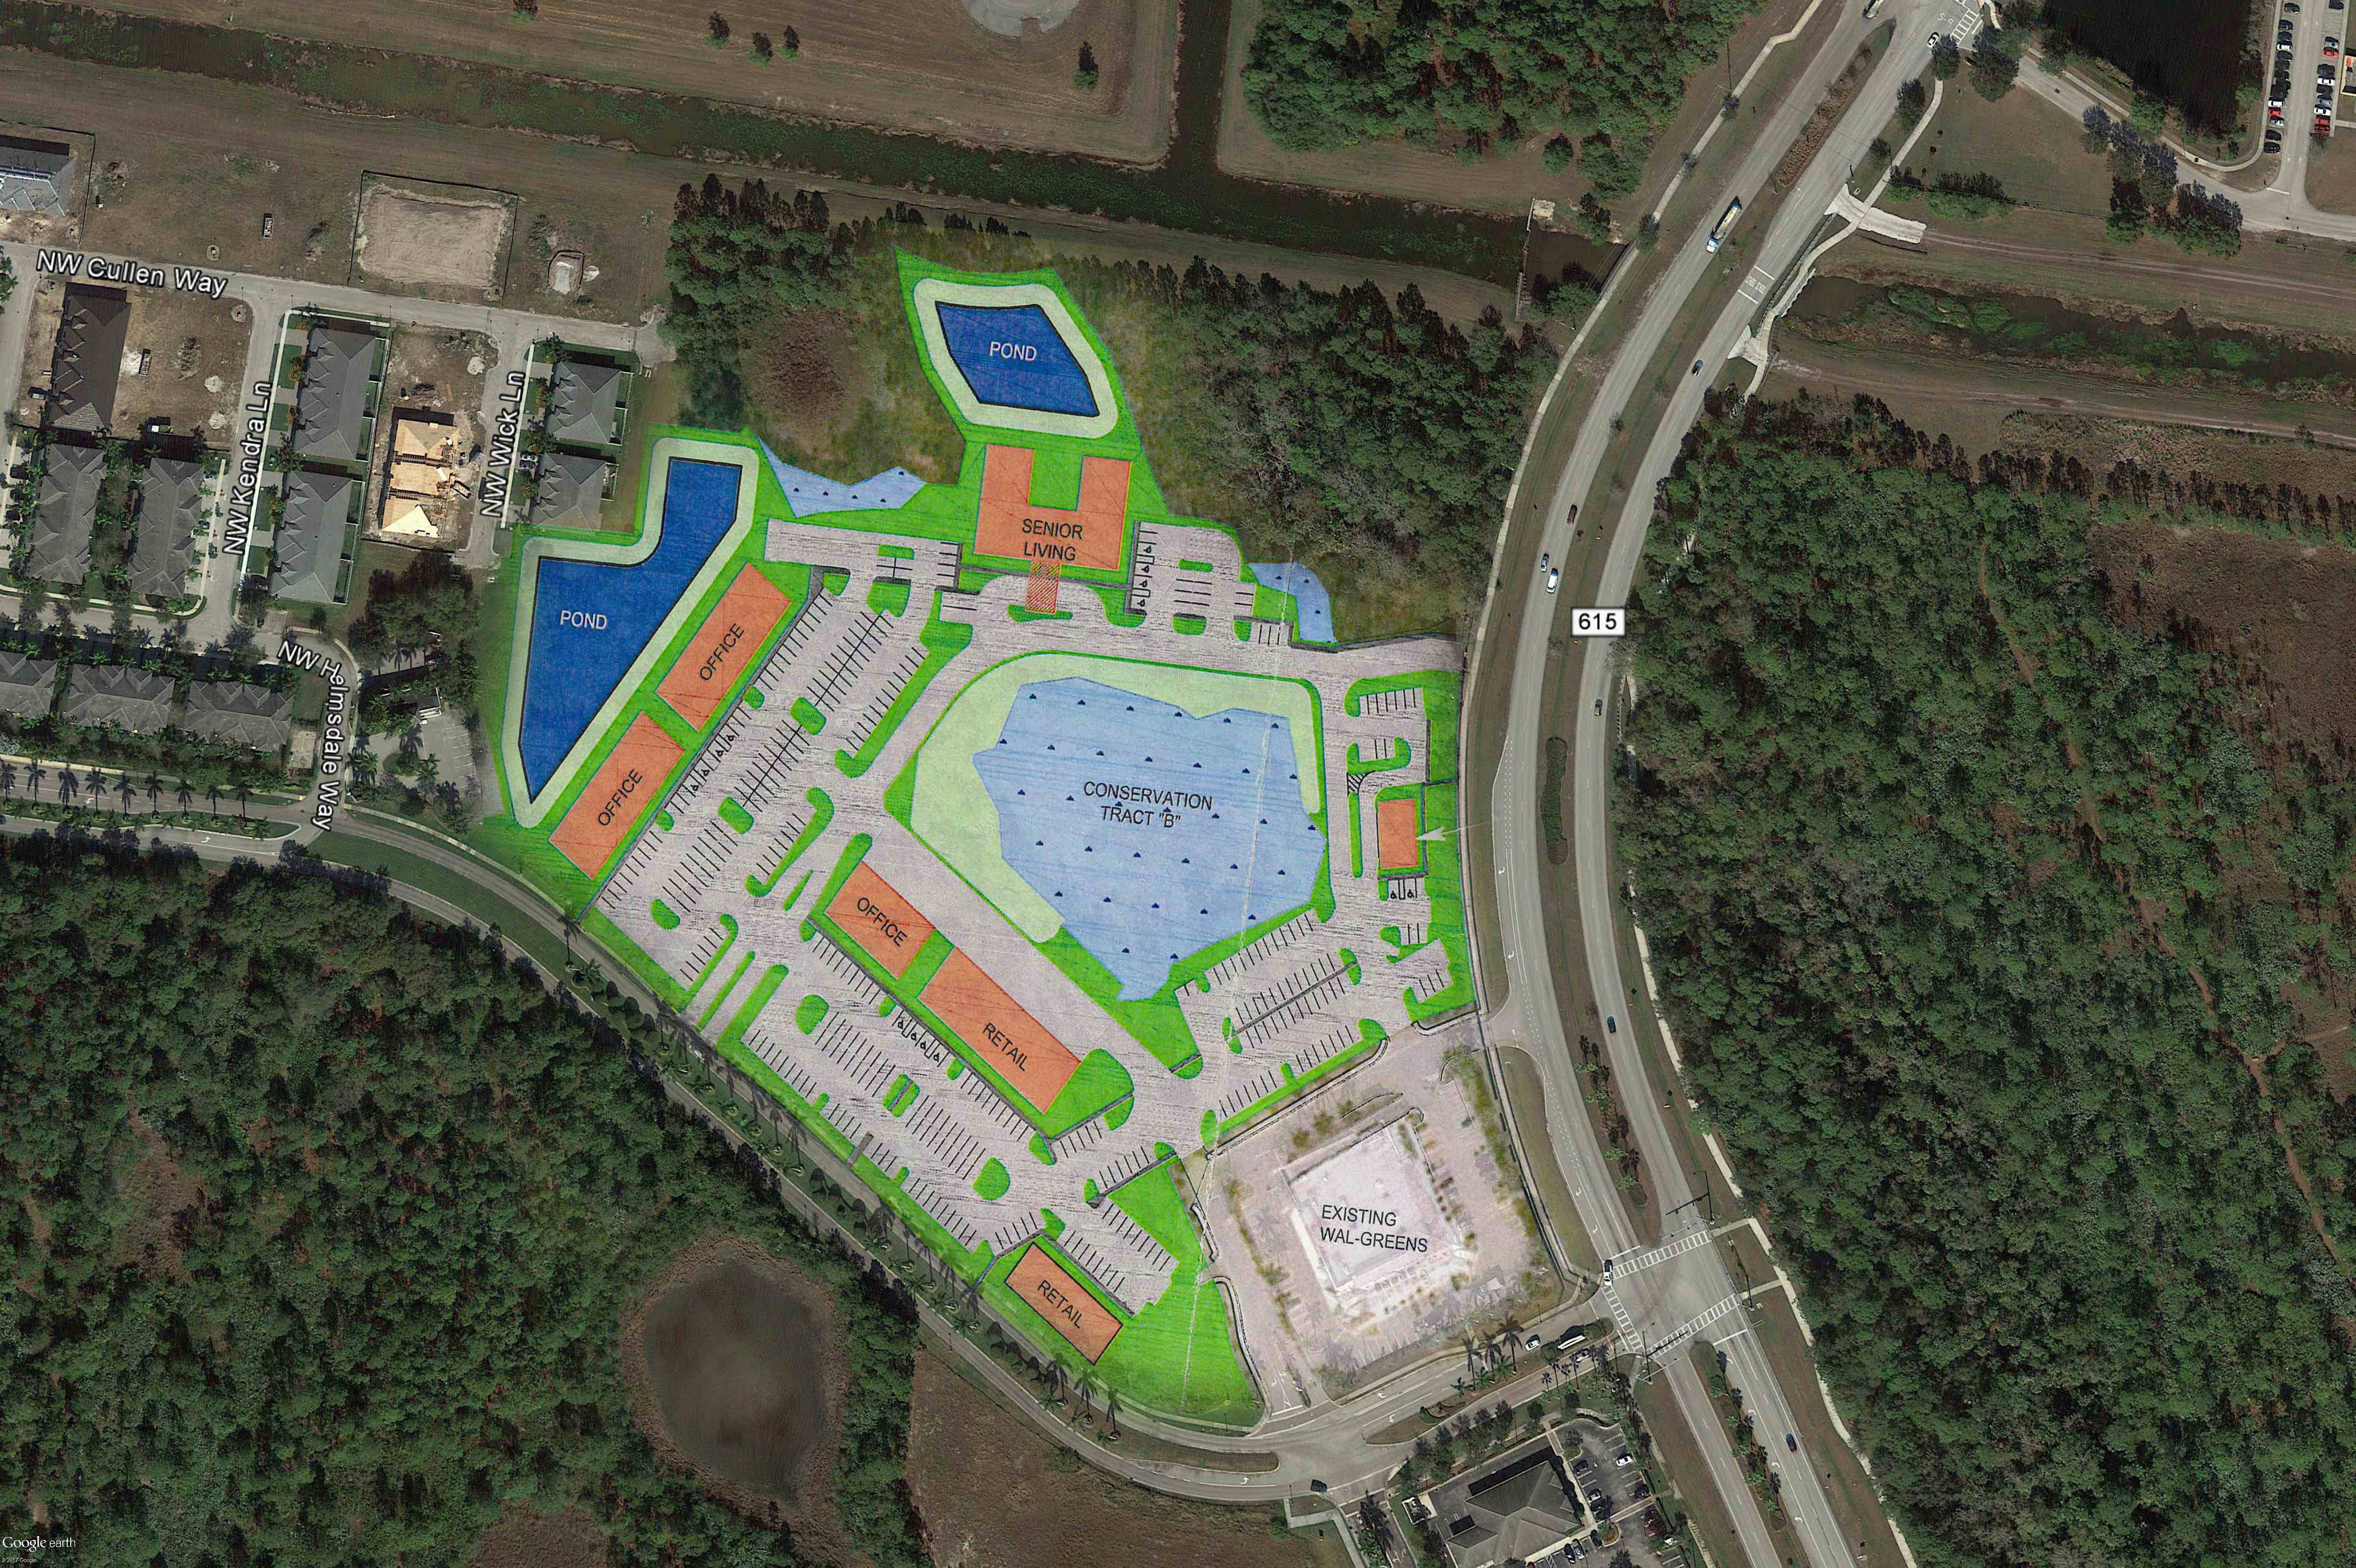 St. Andrews Park Commericial Plaza_Google Earth Aerial_site plan overlay